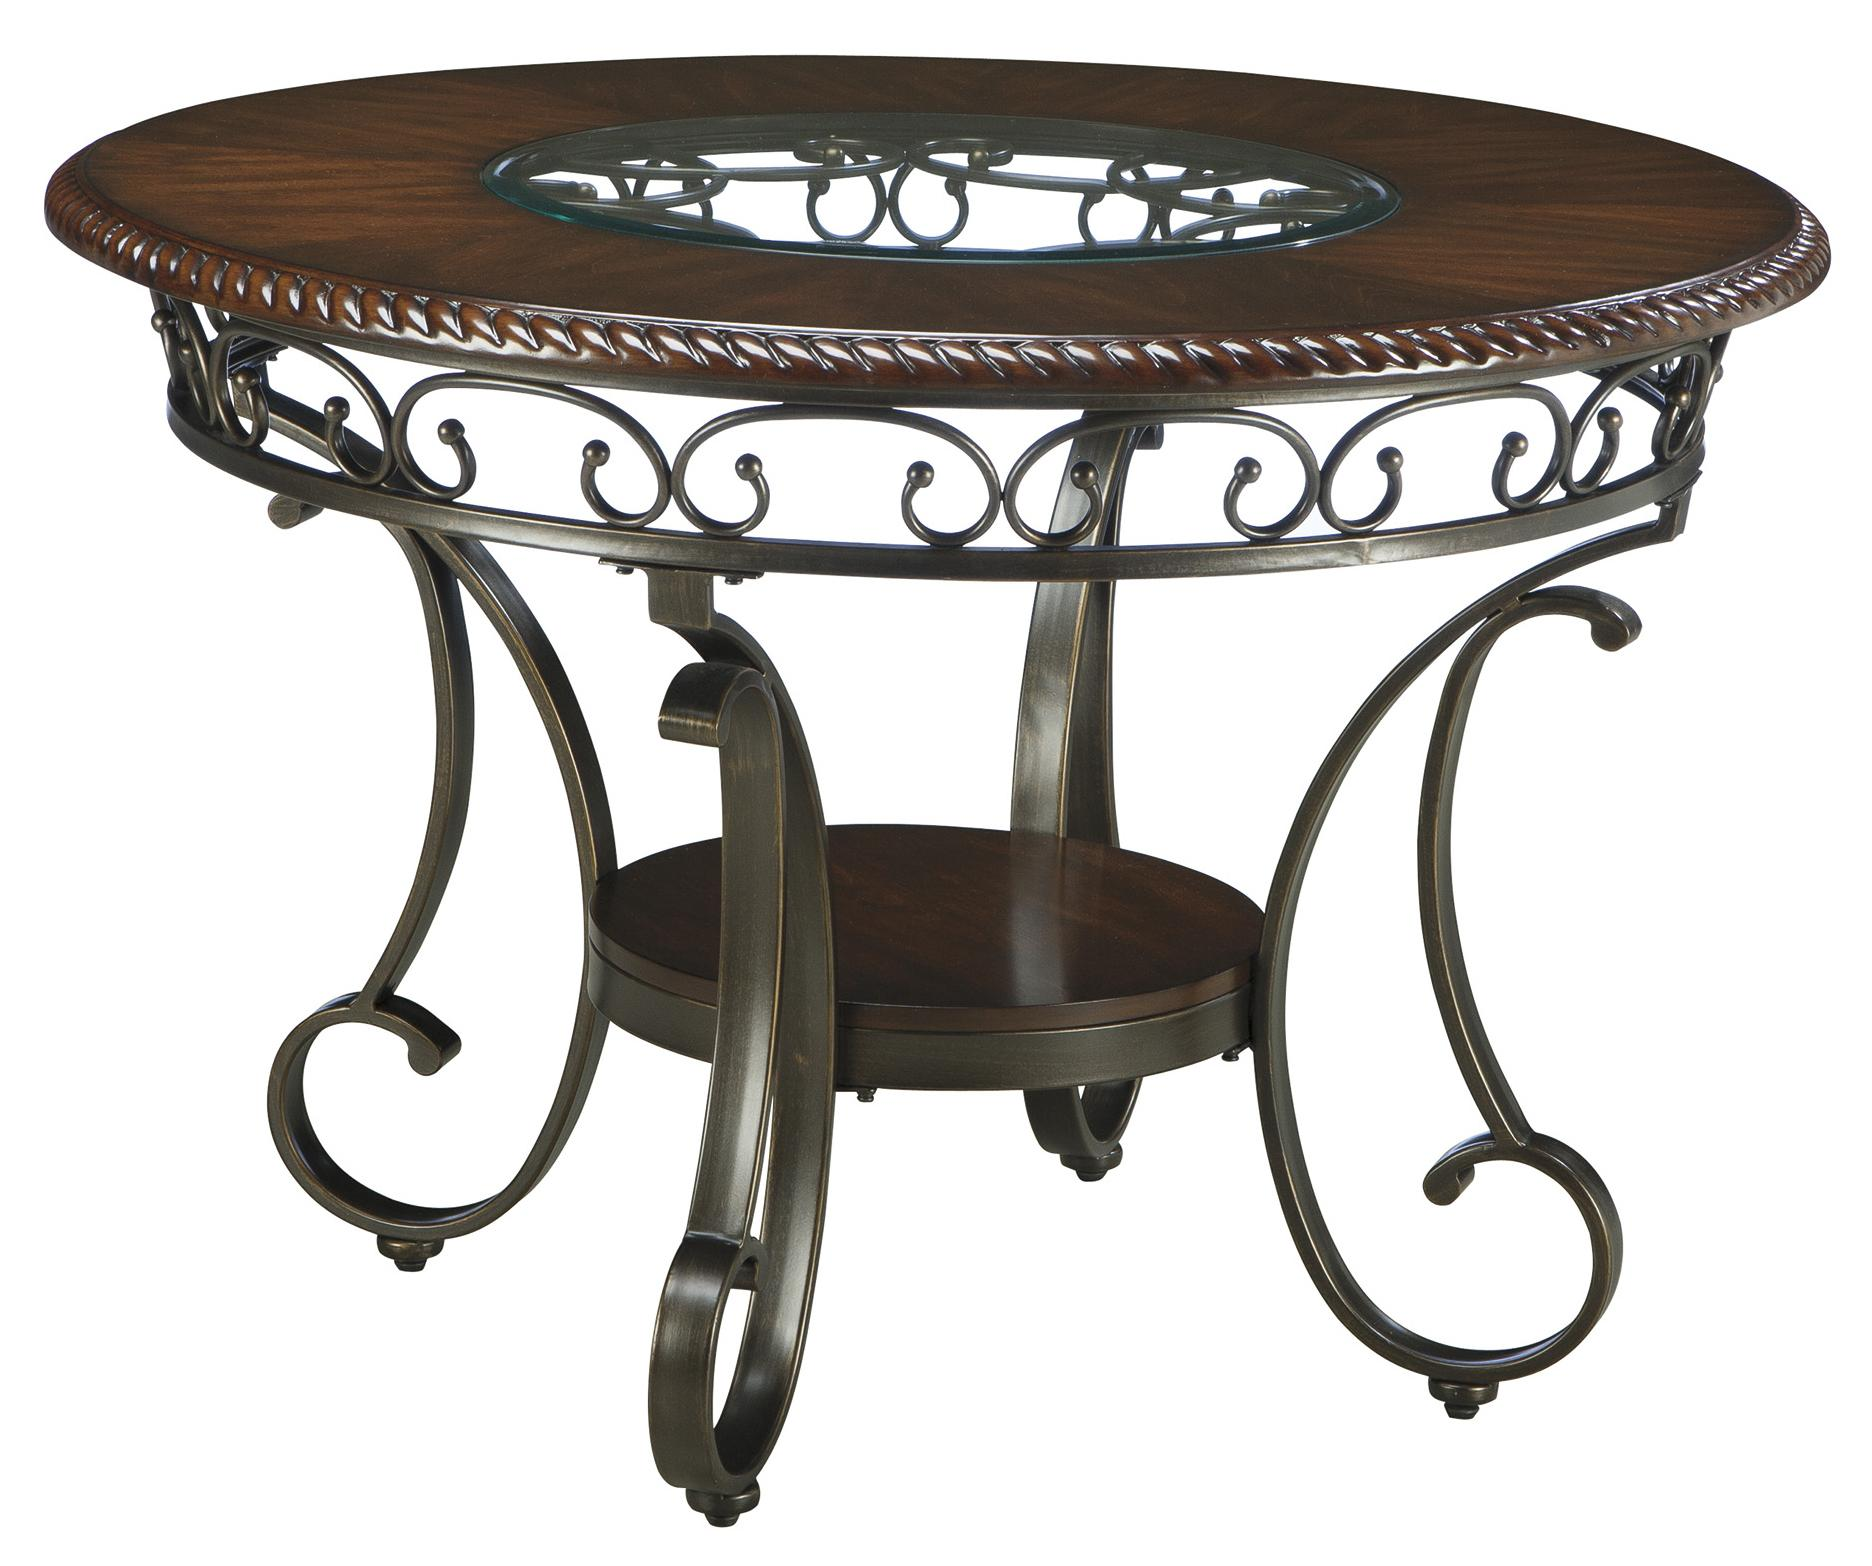 Signature Design By Ashley Glambrey Round Dining Room Table With - Ashley center table